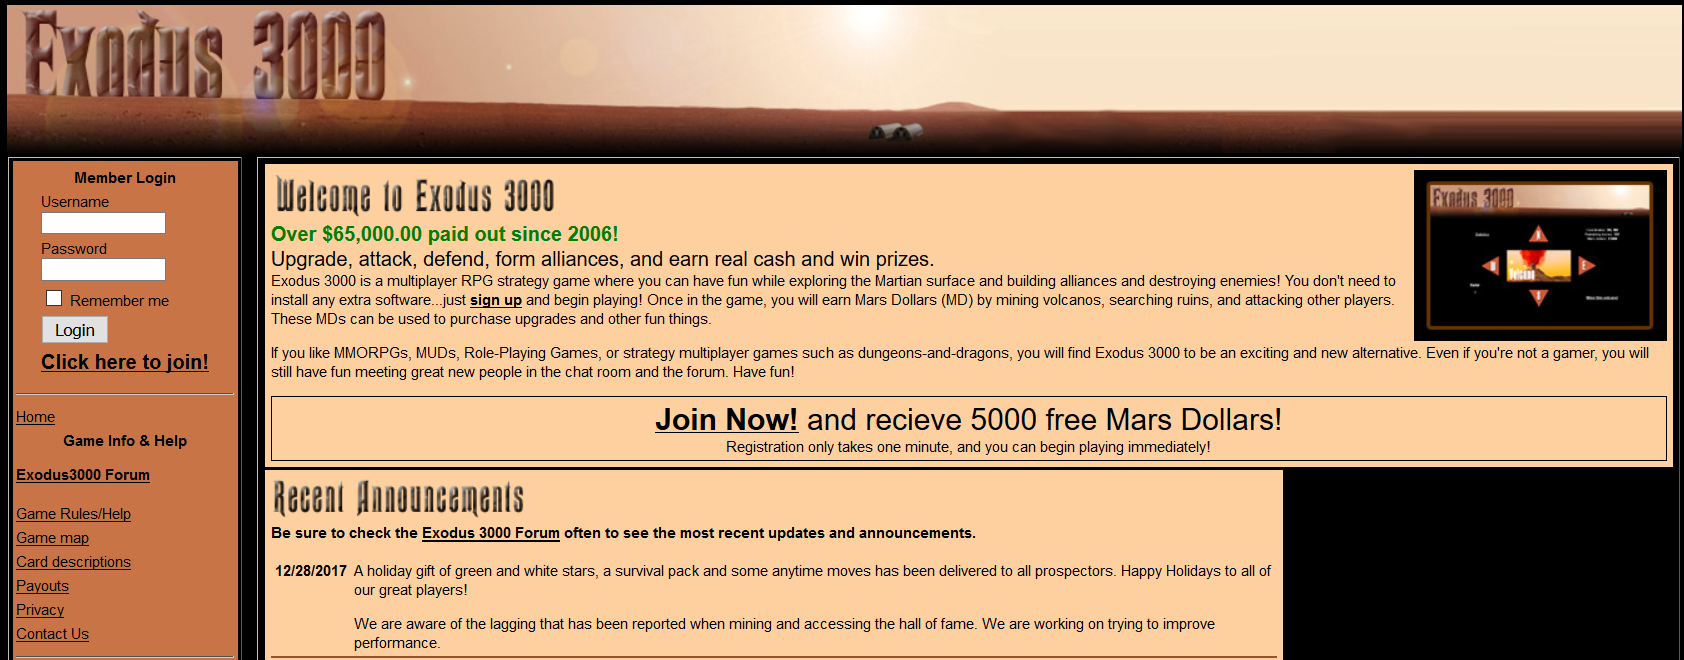 888 casino bonus rules